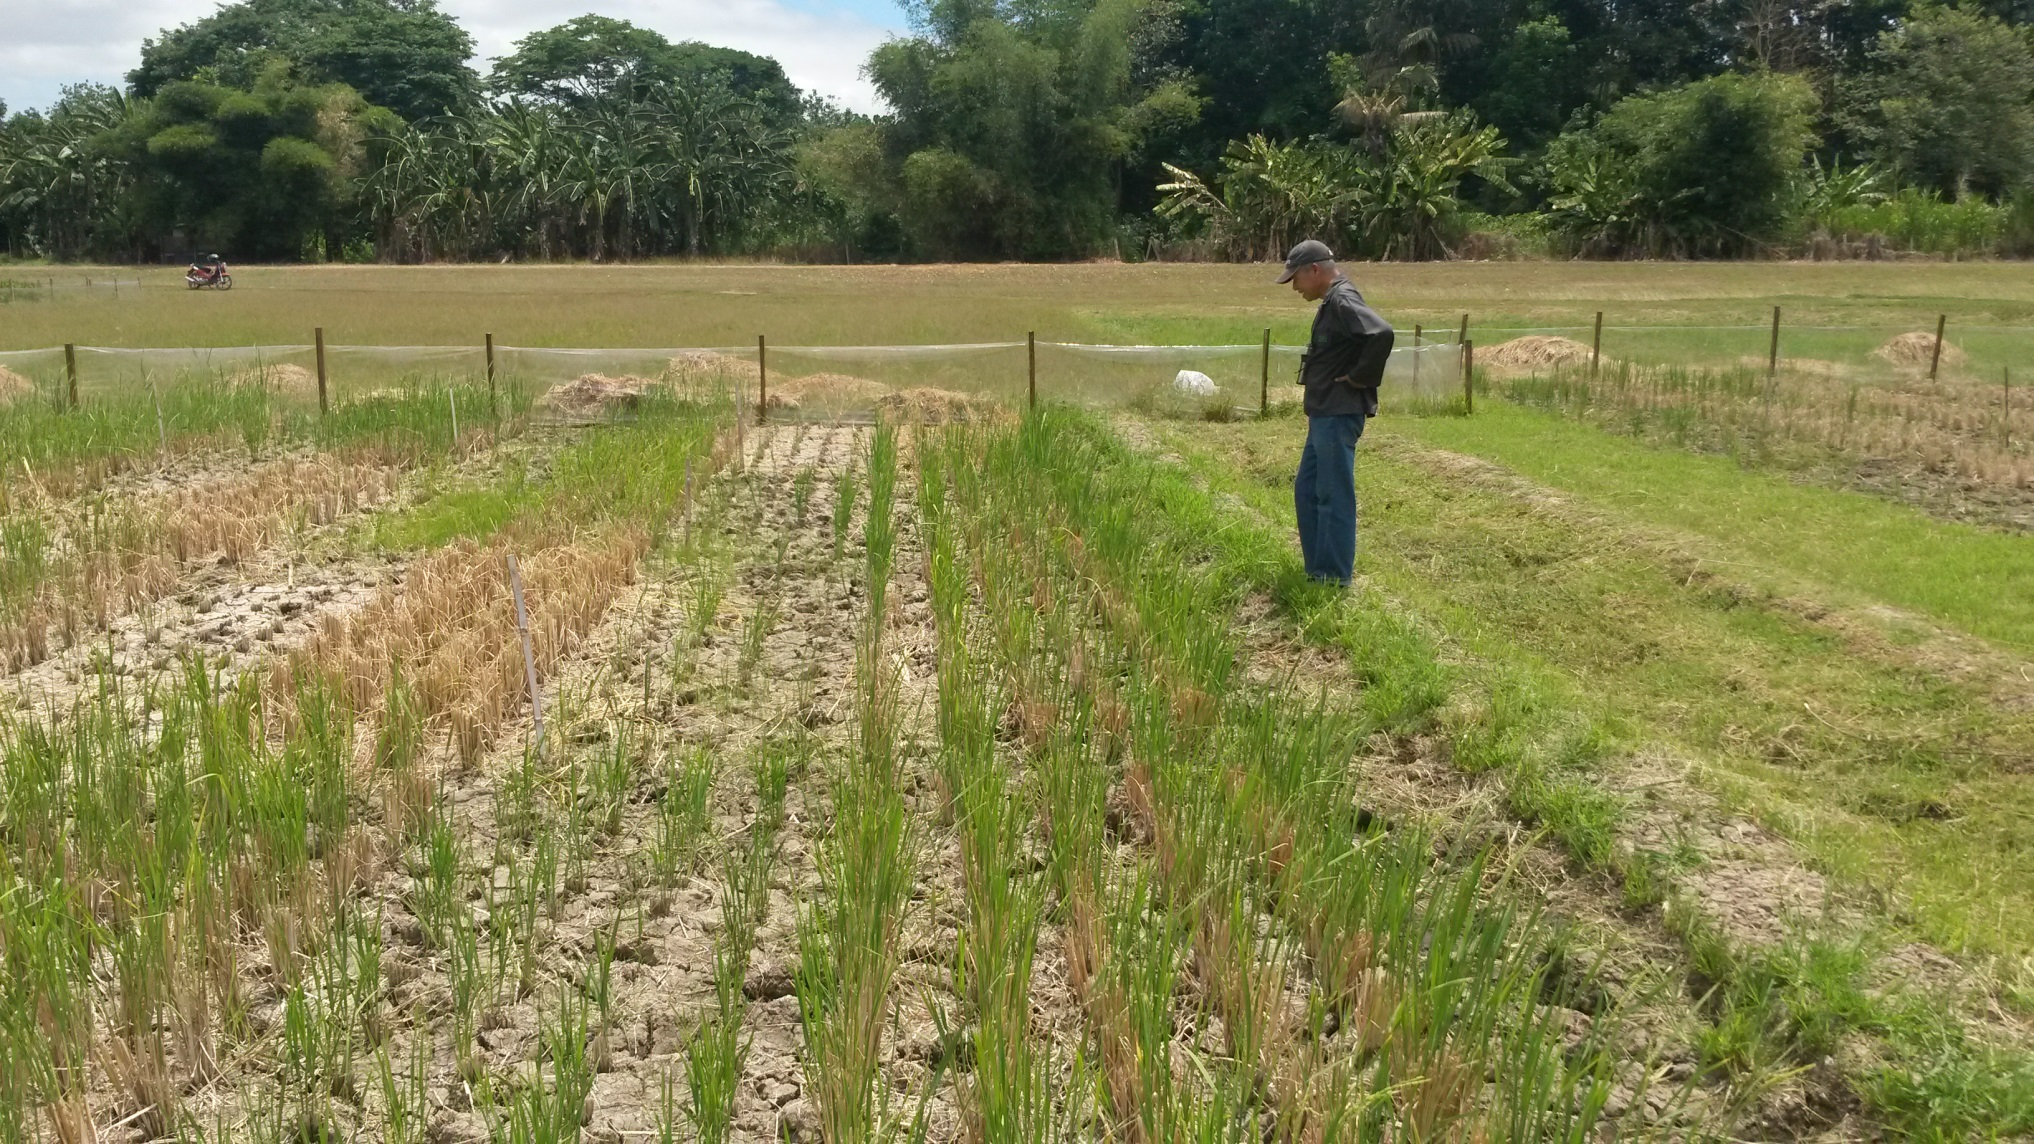 Mr. Torres observing genetic variation in ratoon crop growth at IRRI. (Photo by A. Henry, IRRI)